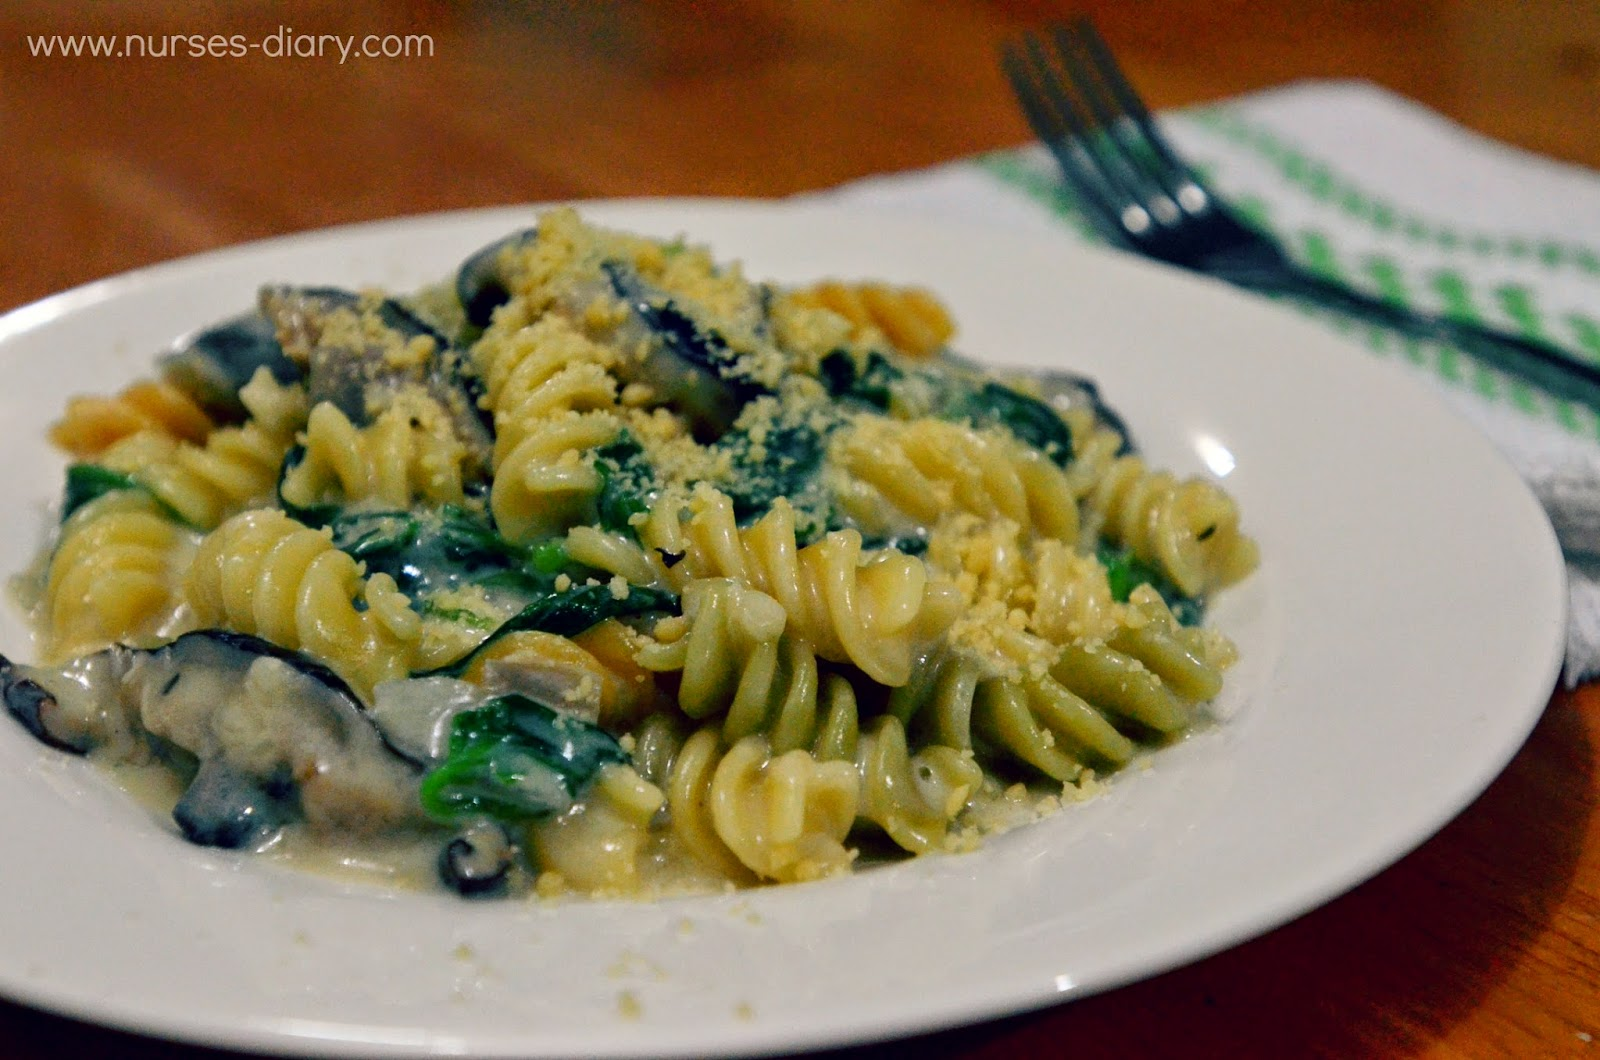 Creamy Spinach and Mushroom Fusili recipe